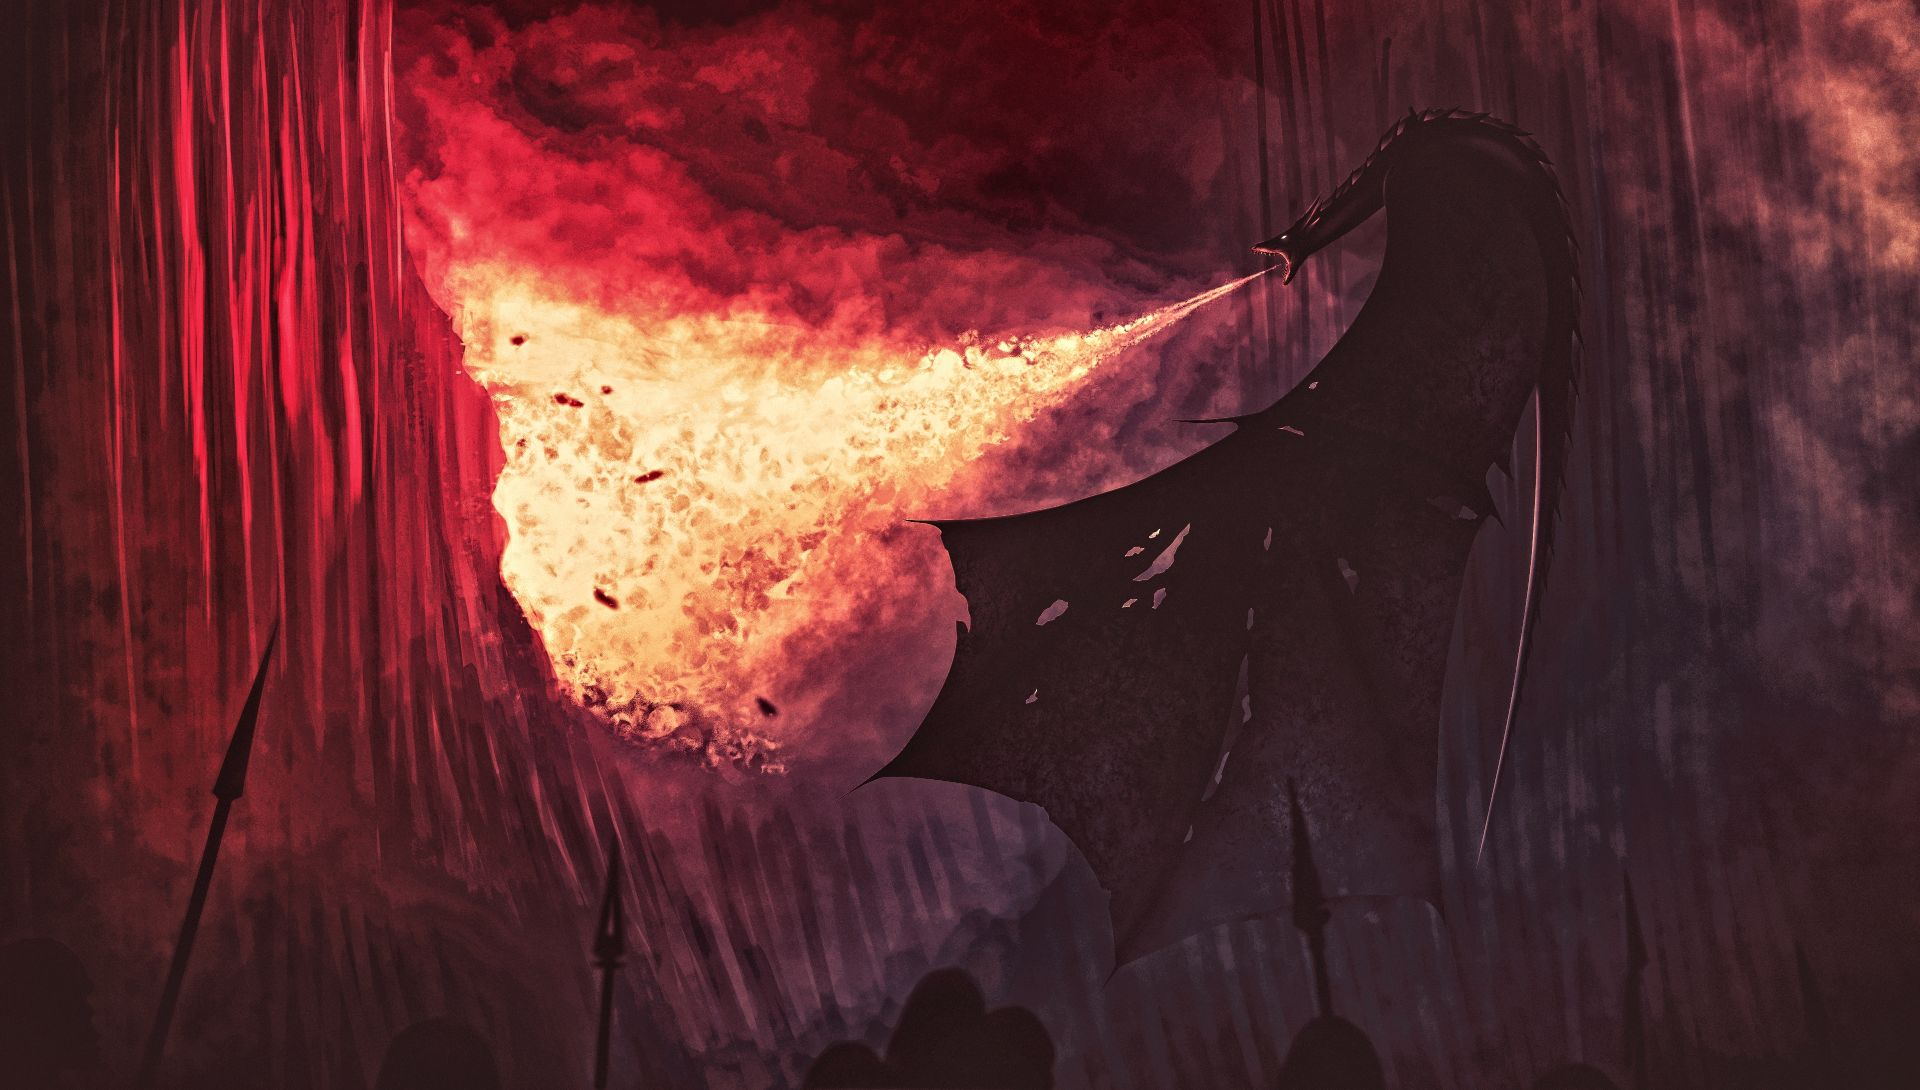 Game of Thrones wall and dragon fire fan art